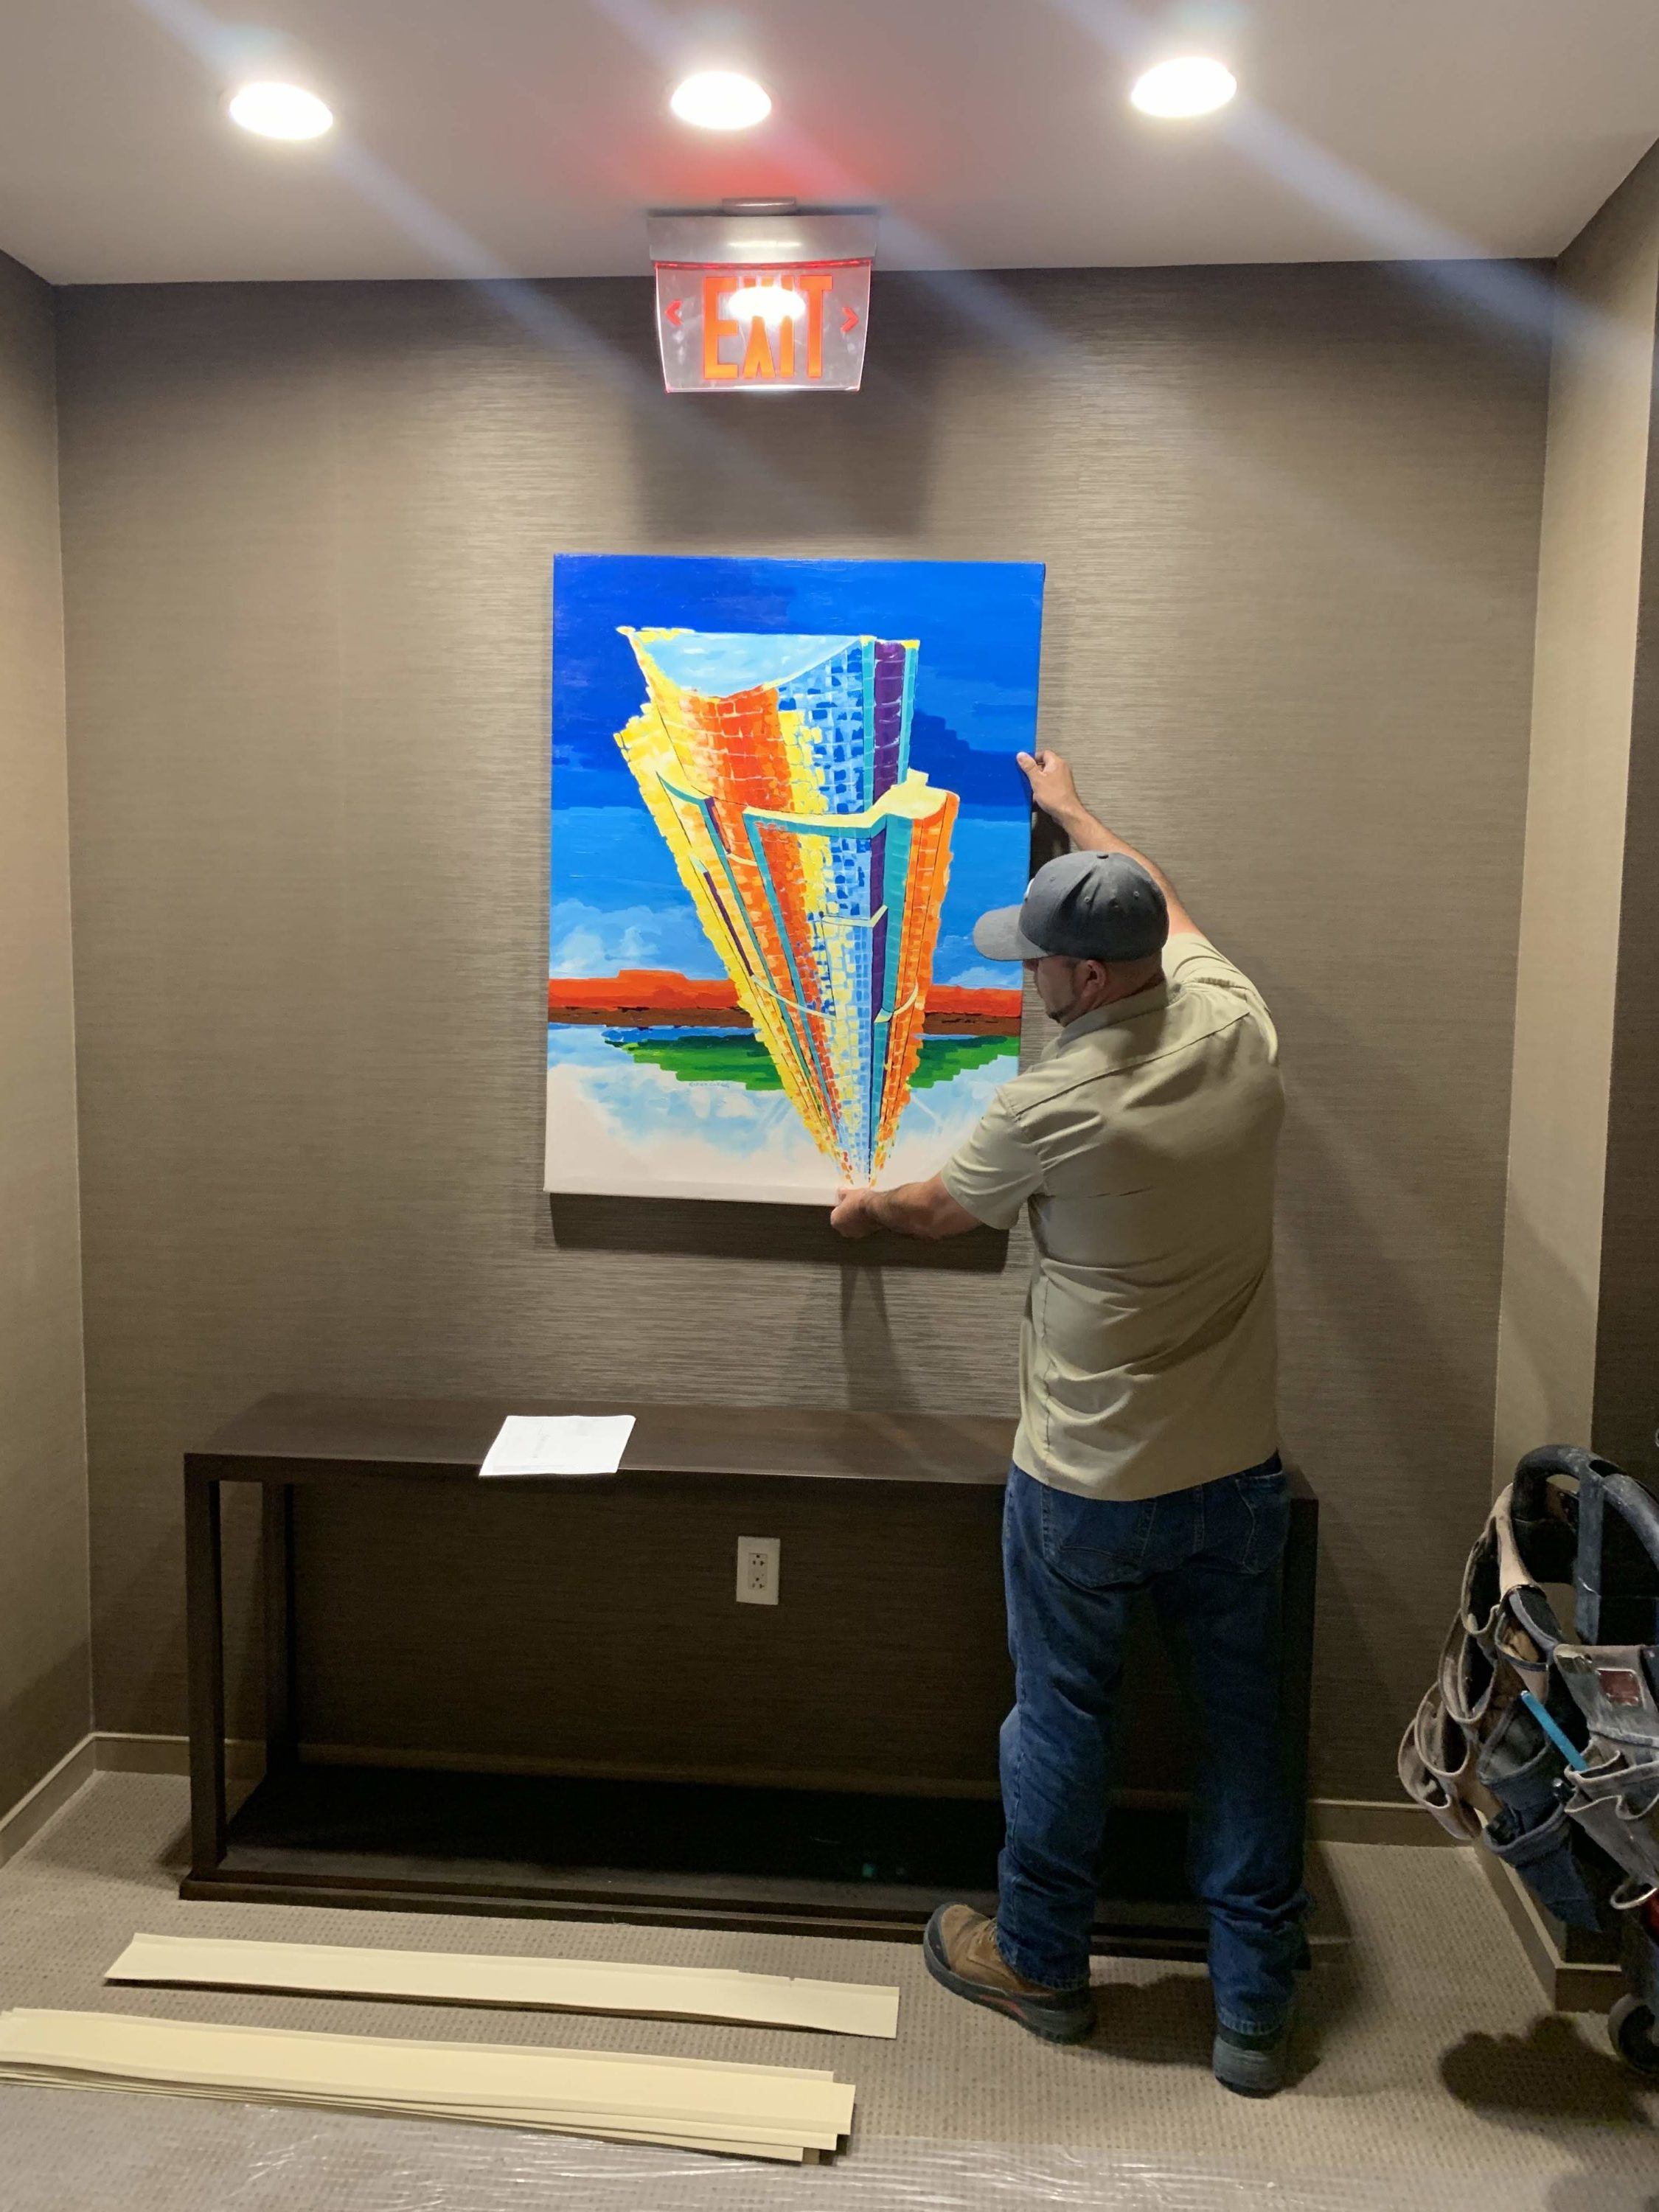 Painting #1 Installation. Austonian high rise in downtown Austin, Texas.